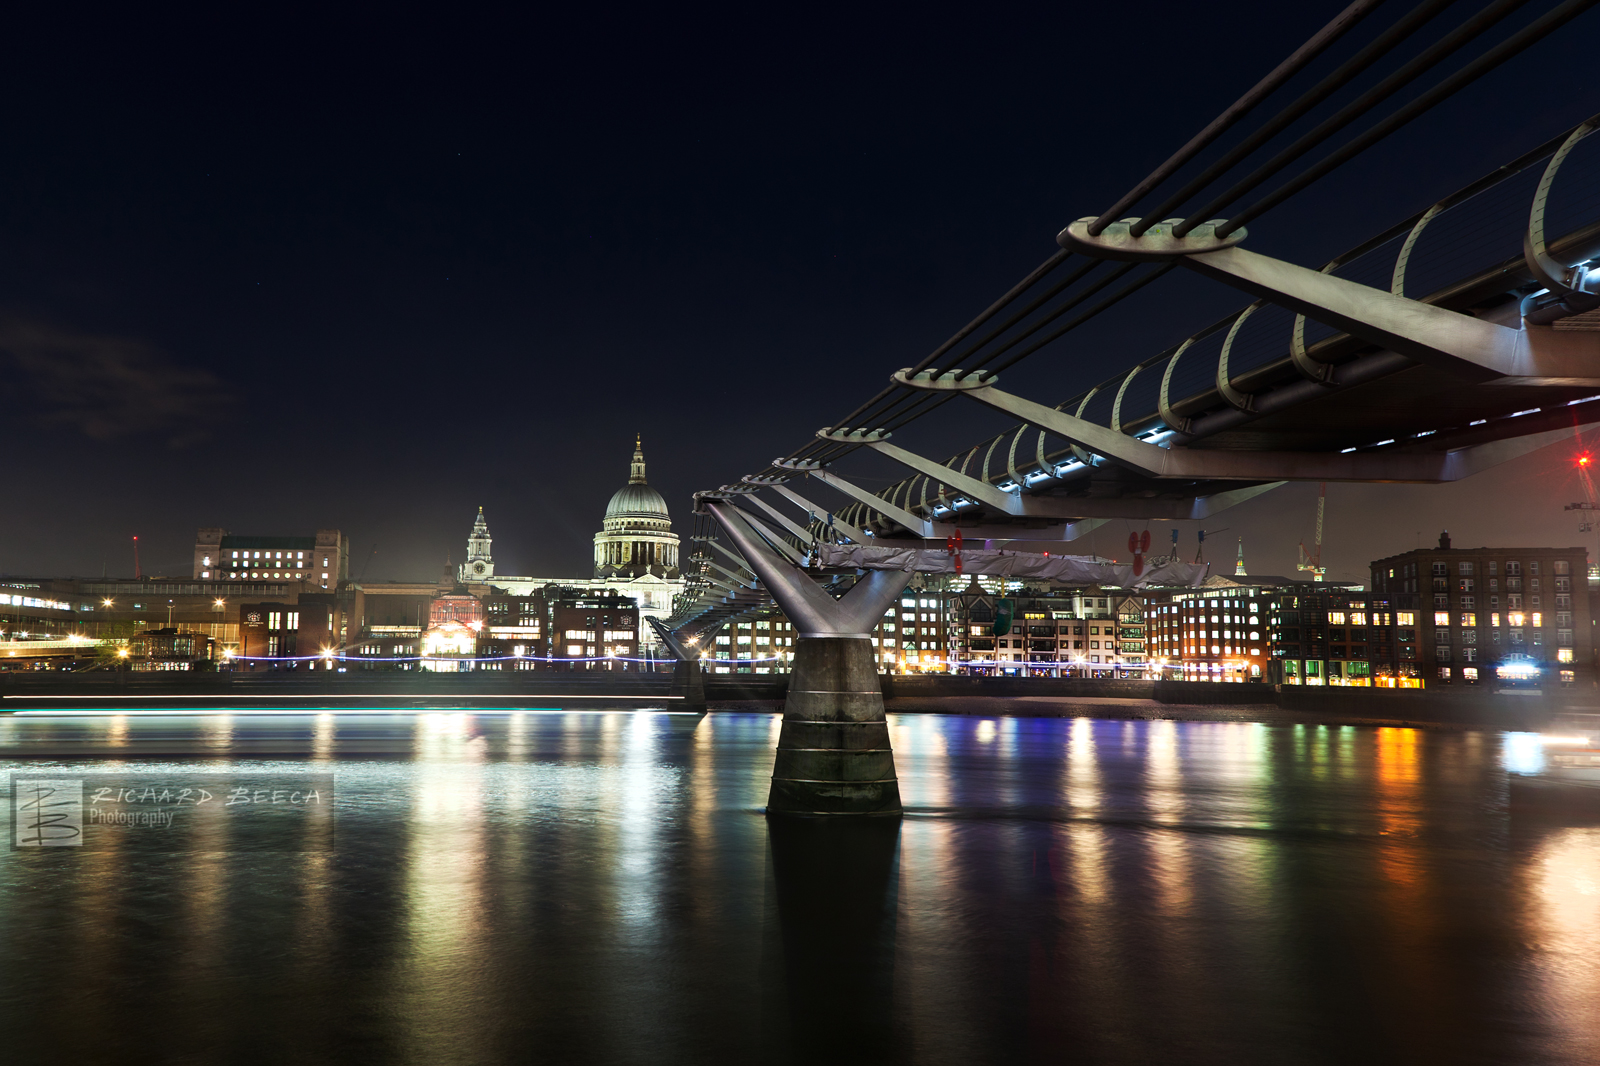 Thames by Night